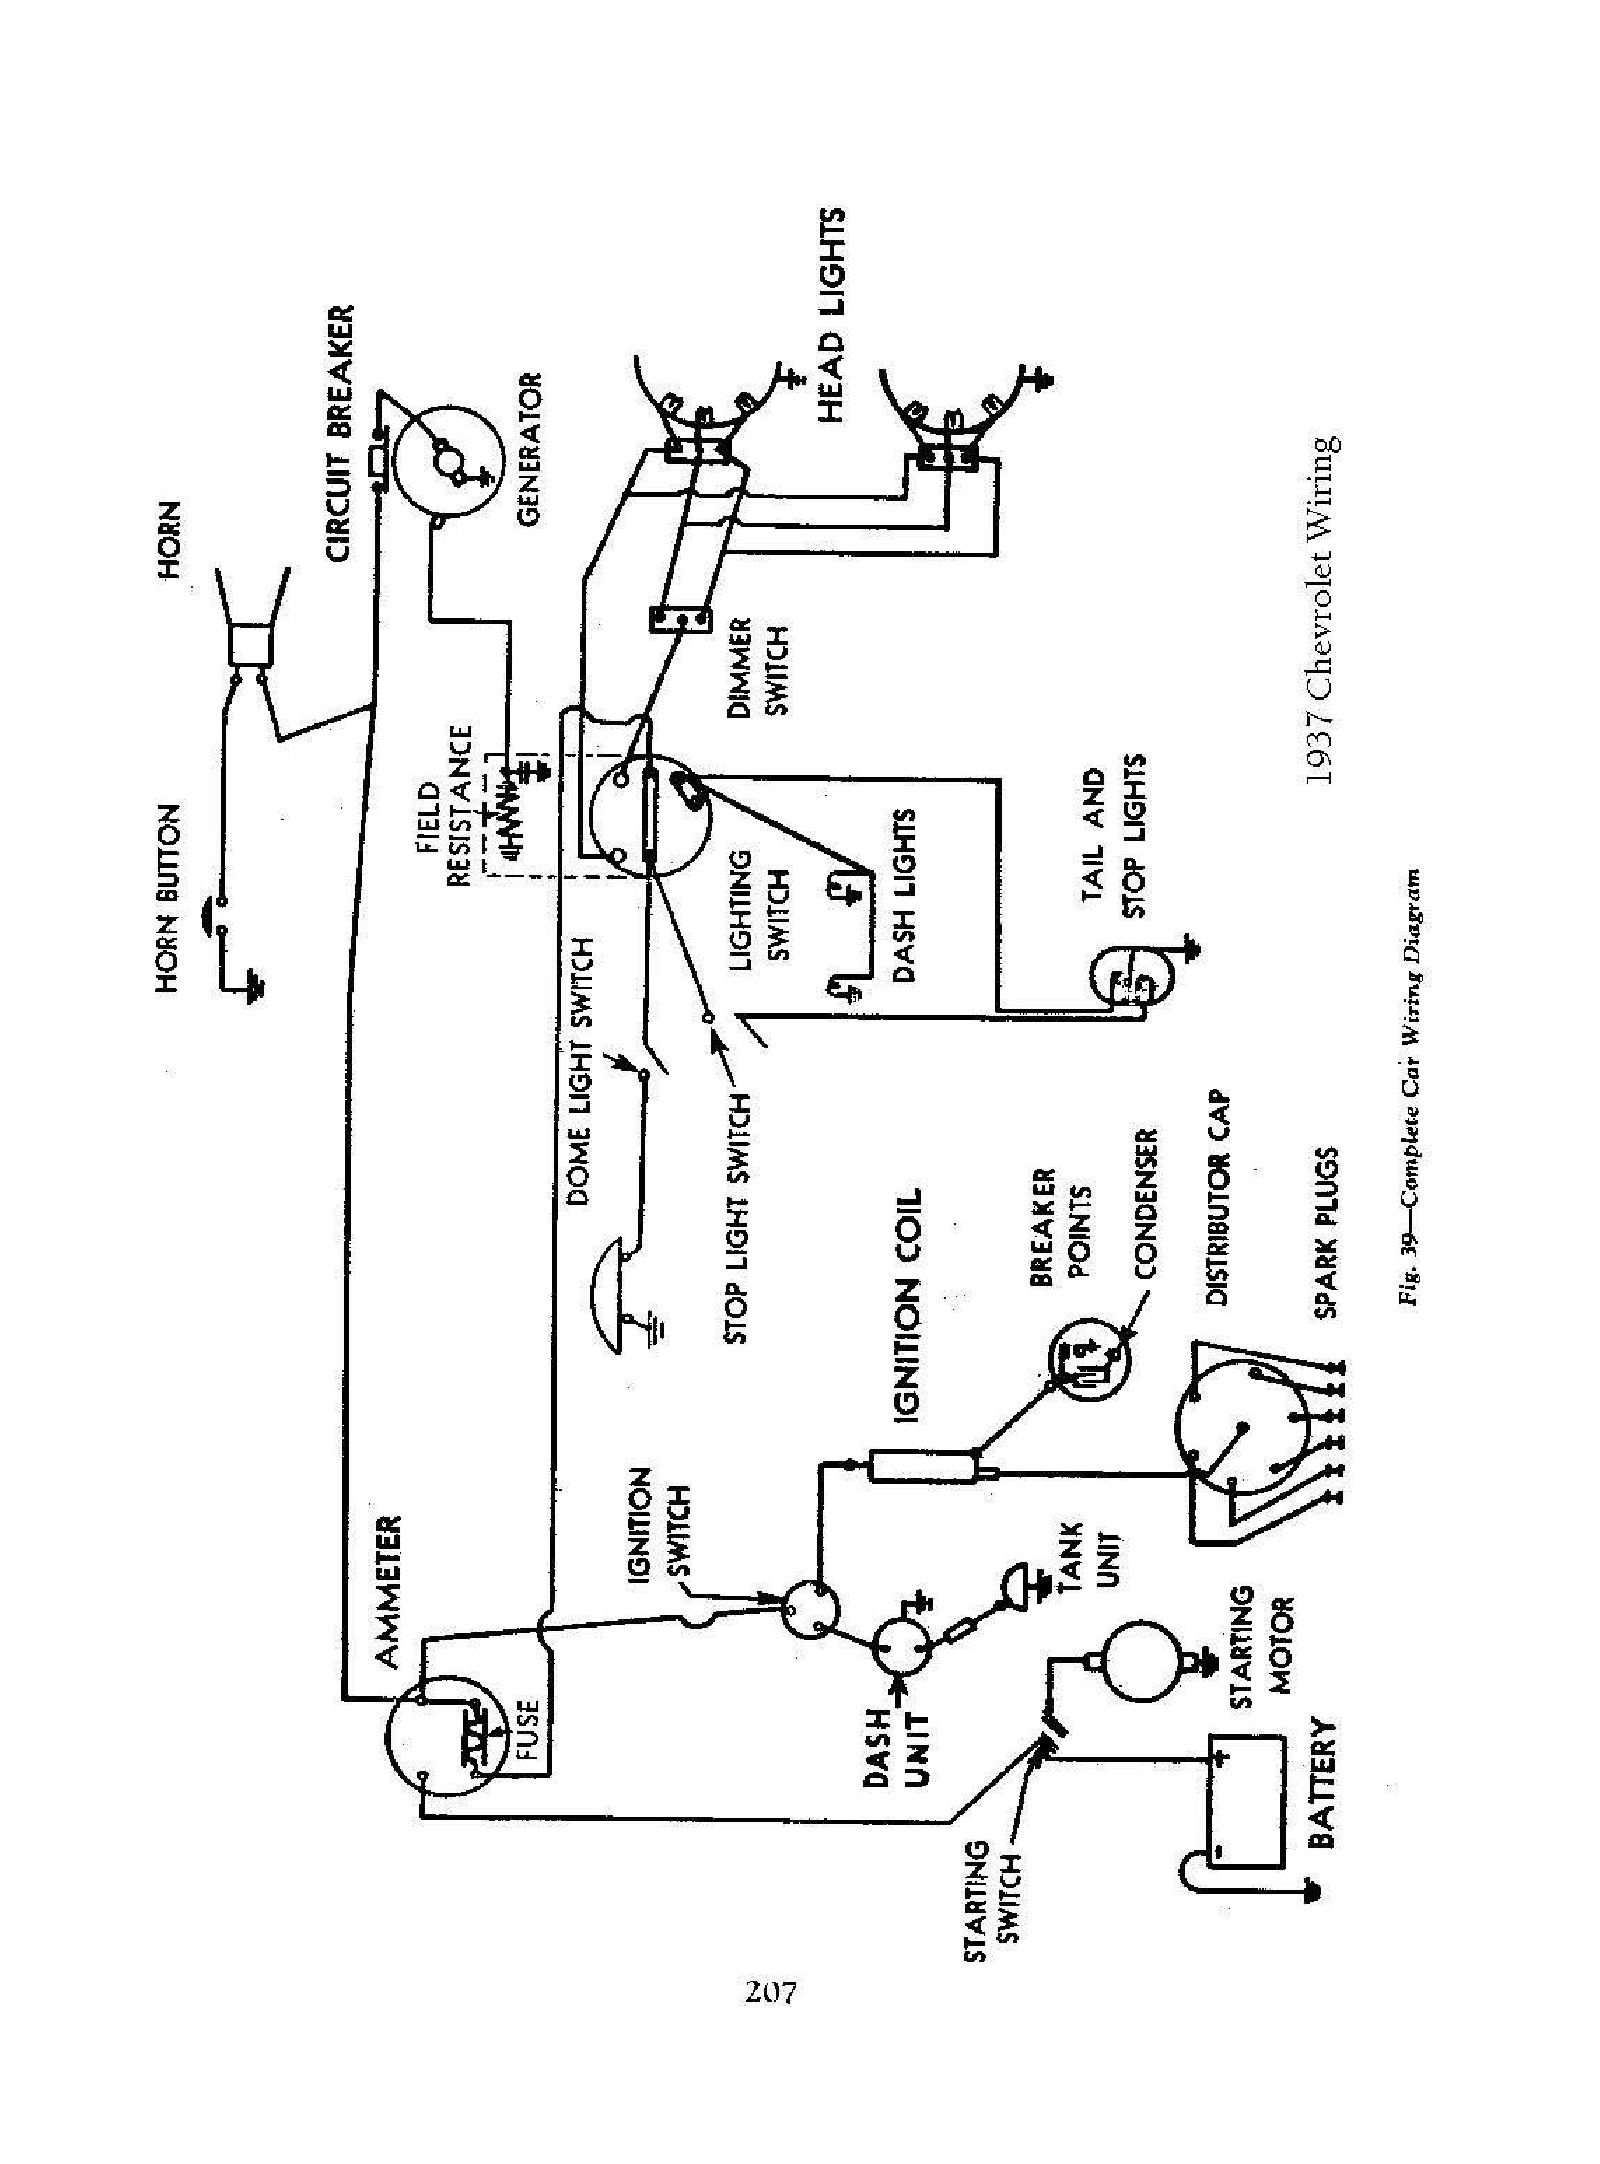 Wiring Diagram For A 1937 Chevy Truck Libraries Kia Sorento D4cb Engine Diagrams Chevrolet Third Level1937 Todays 1947